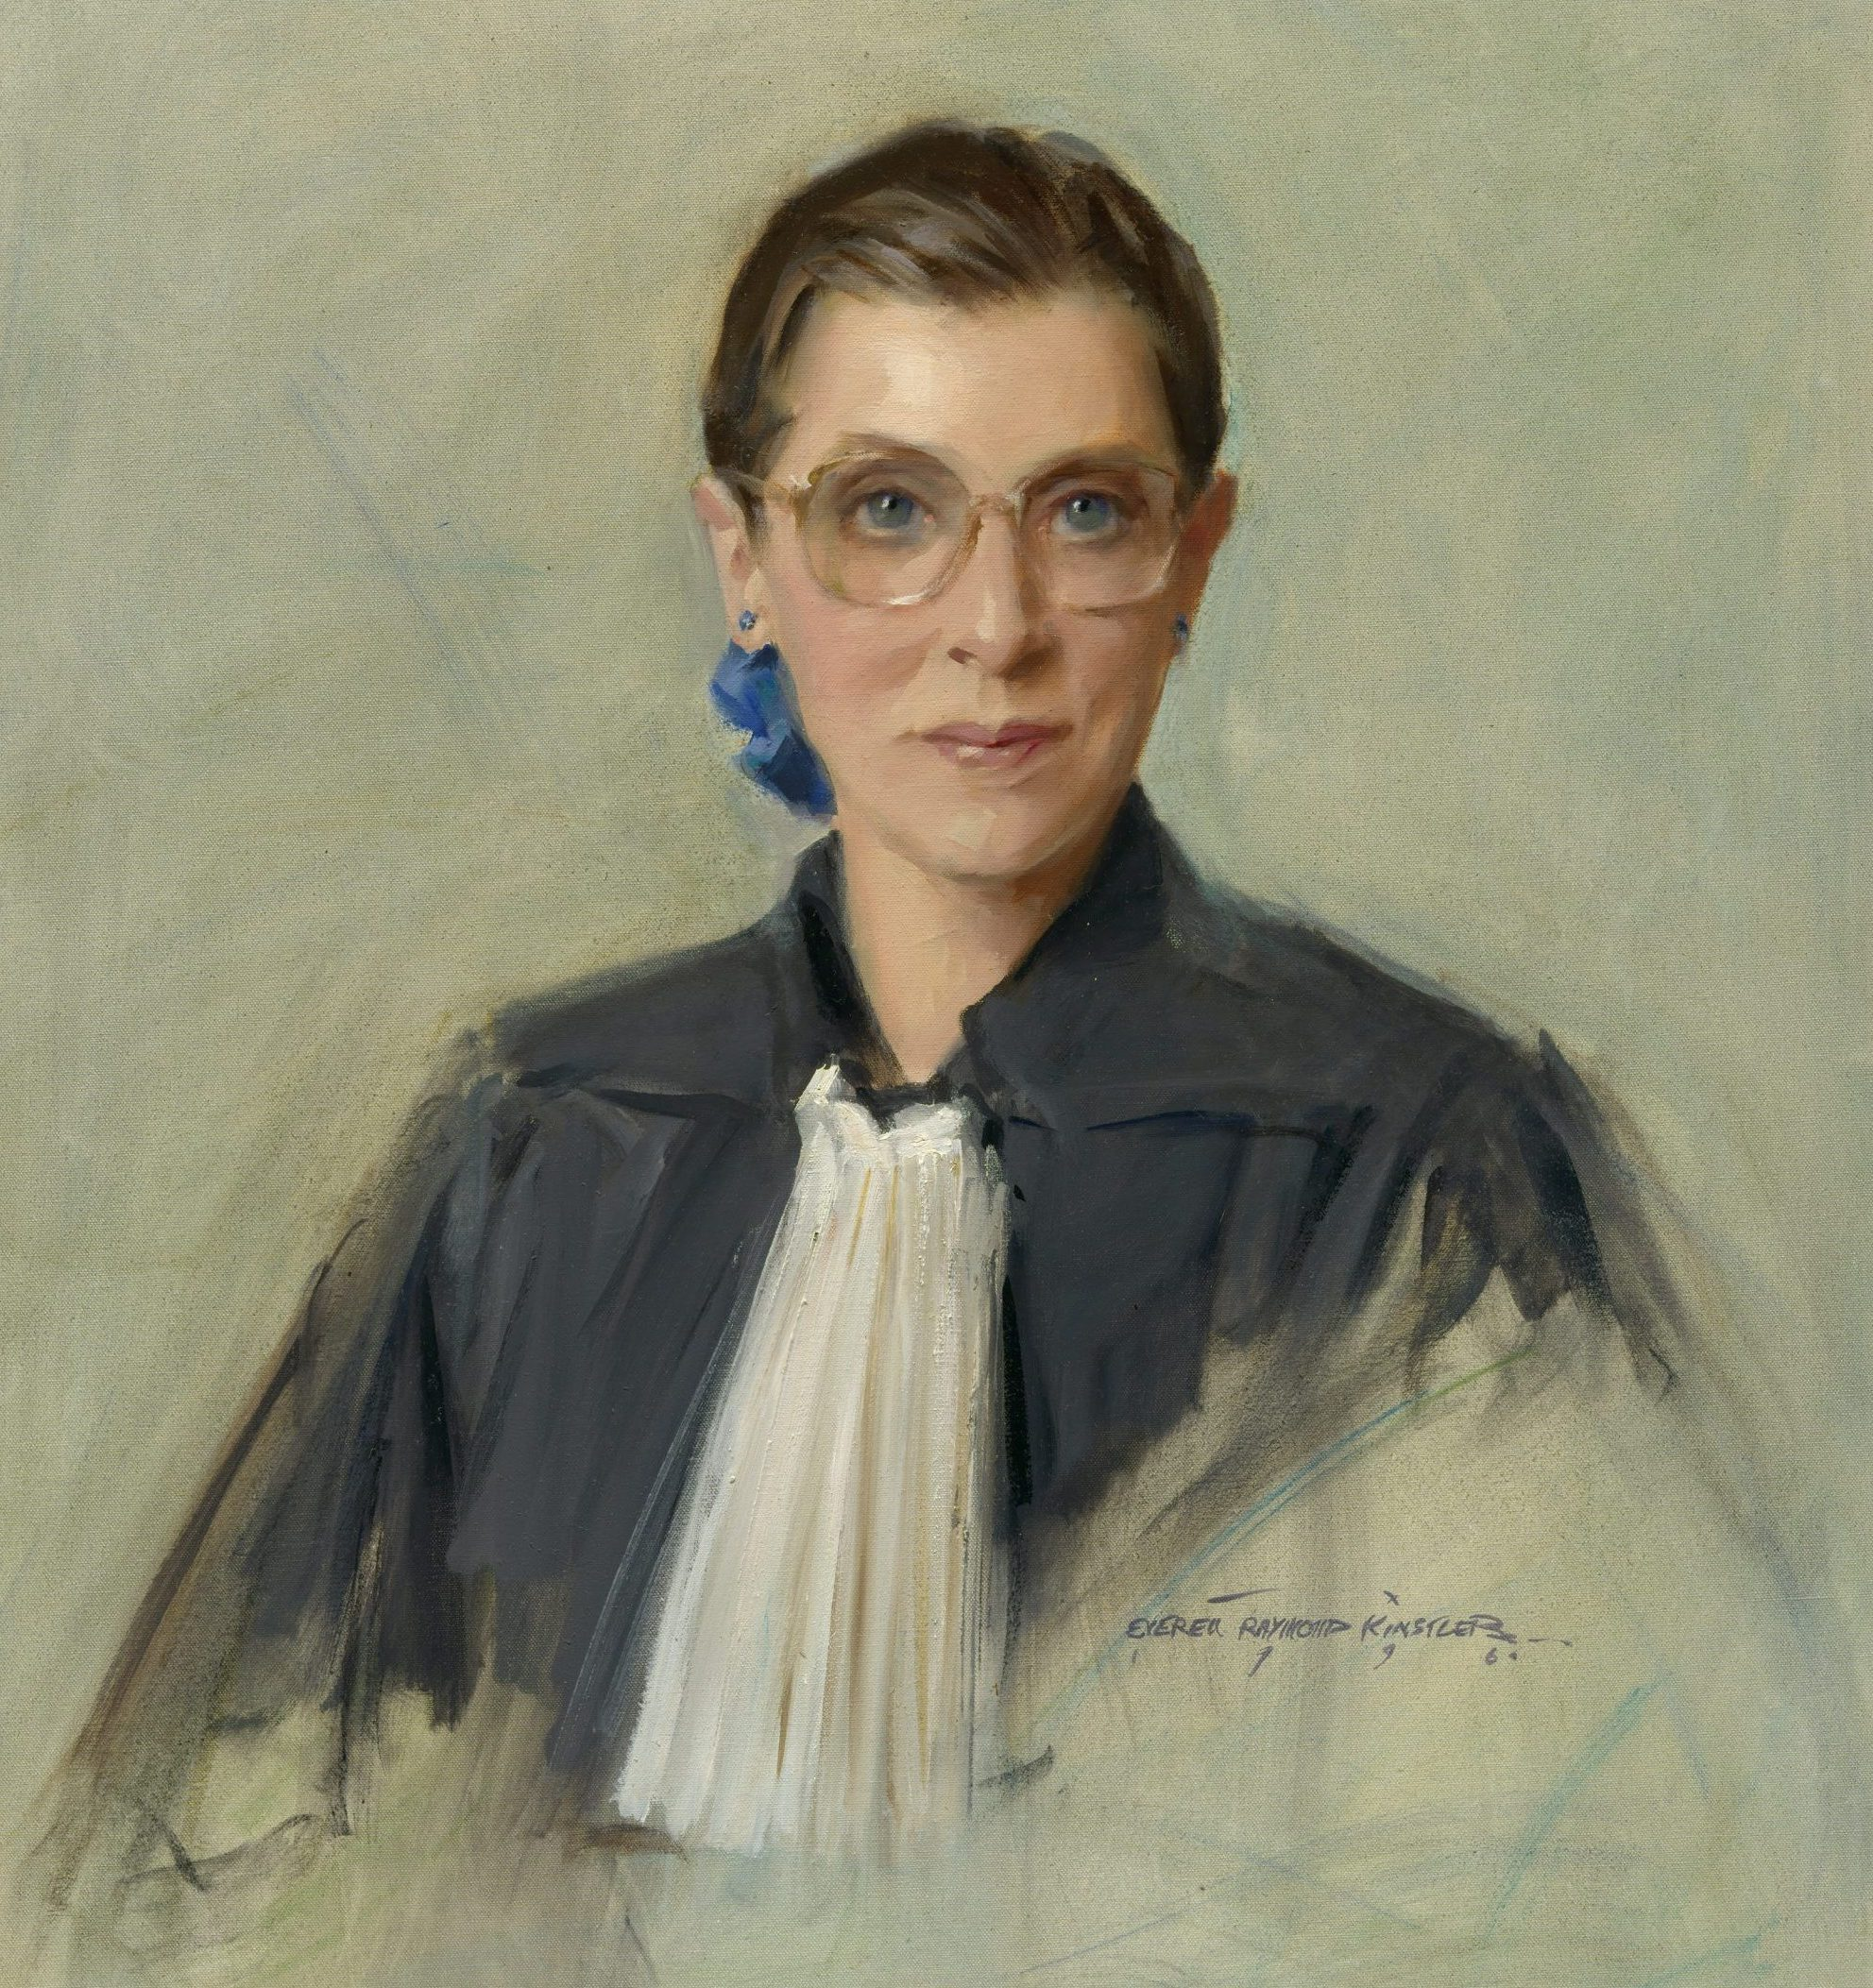 Explore the life of the 'Notorious RBG' at the Maltz Museum